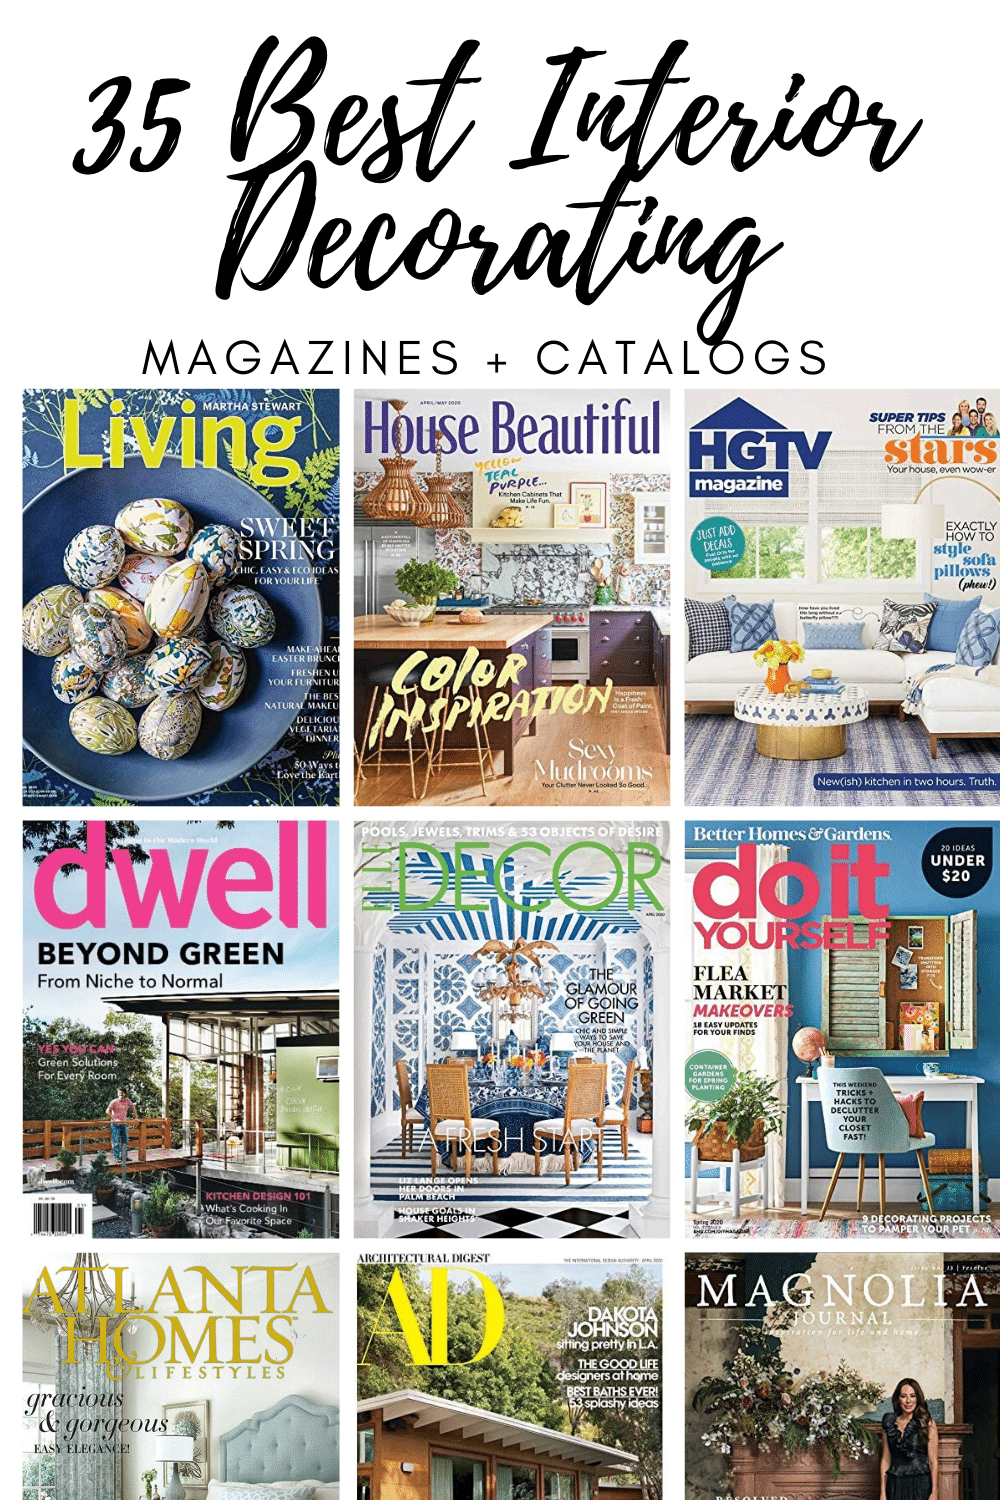 35 Top Interior Decorating Magazines